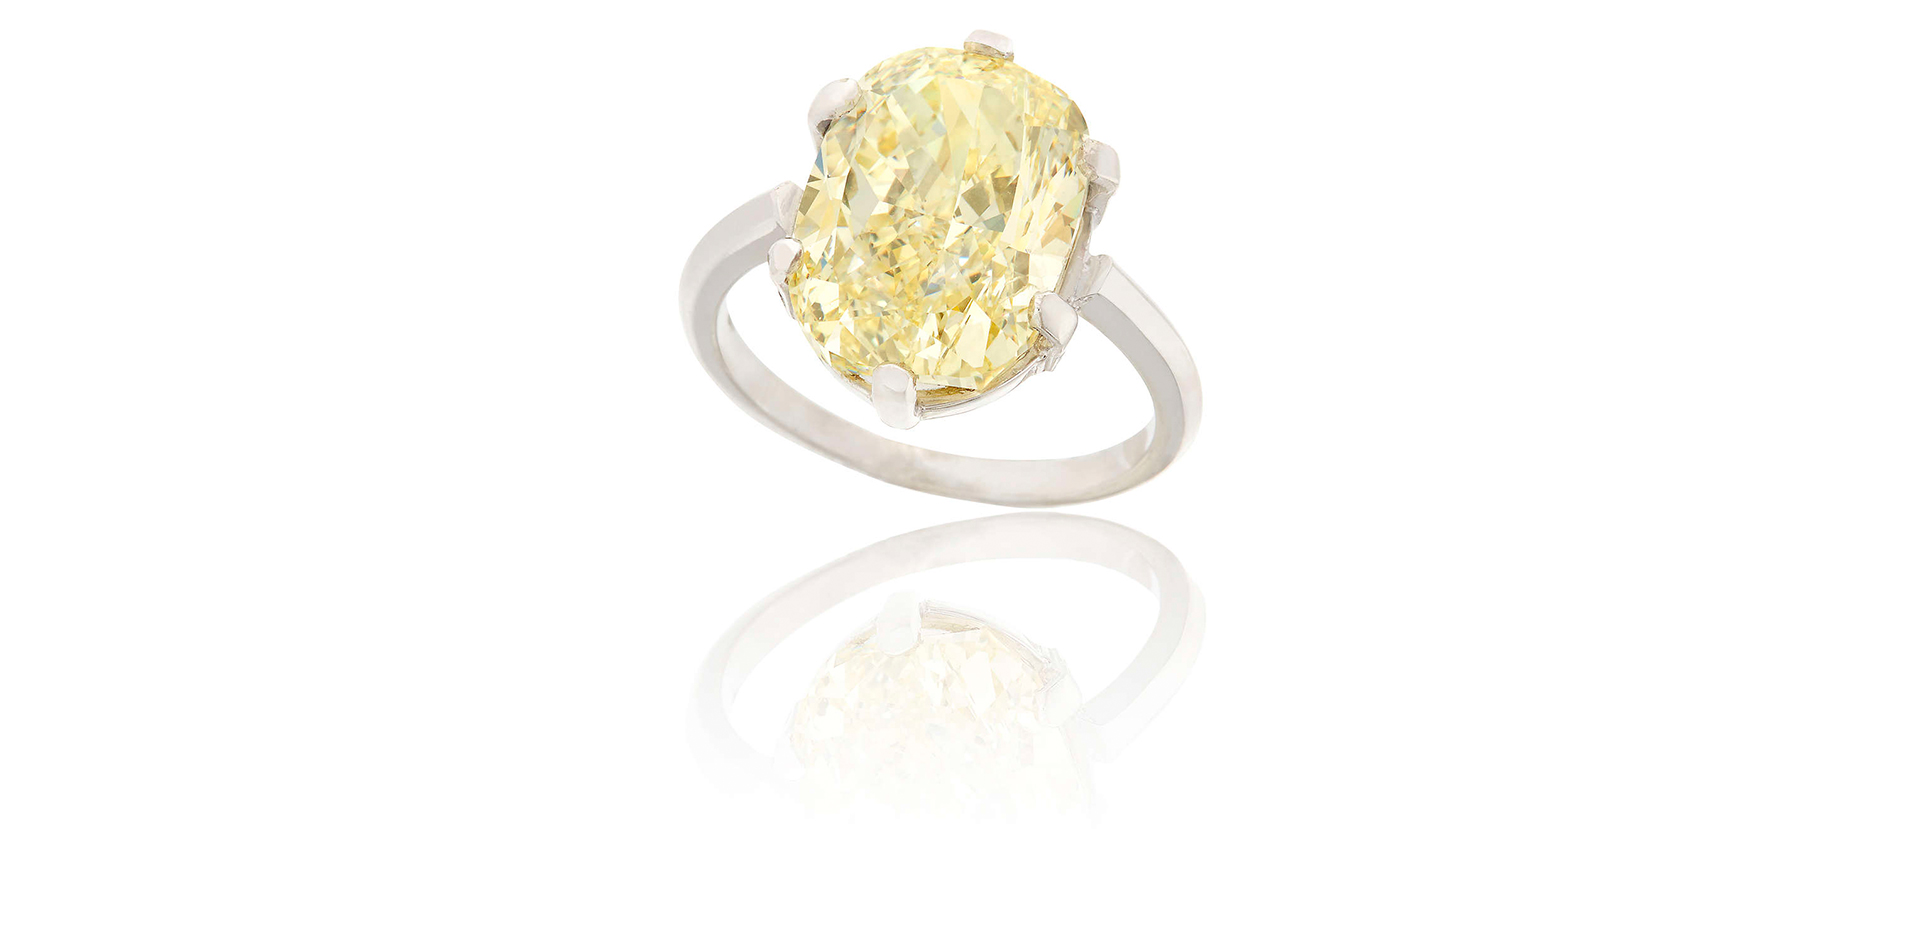 AN IMPORTANT FANCY COLOURED DIAMOND RING - Sold For €72,000